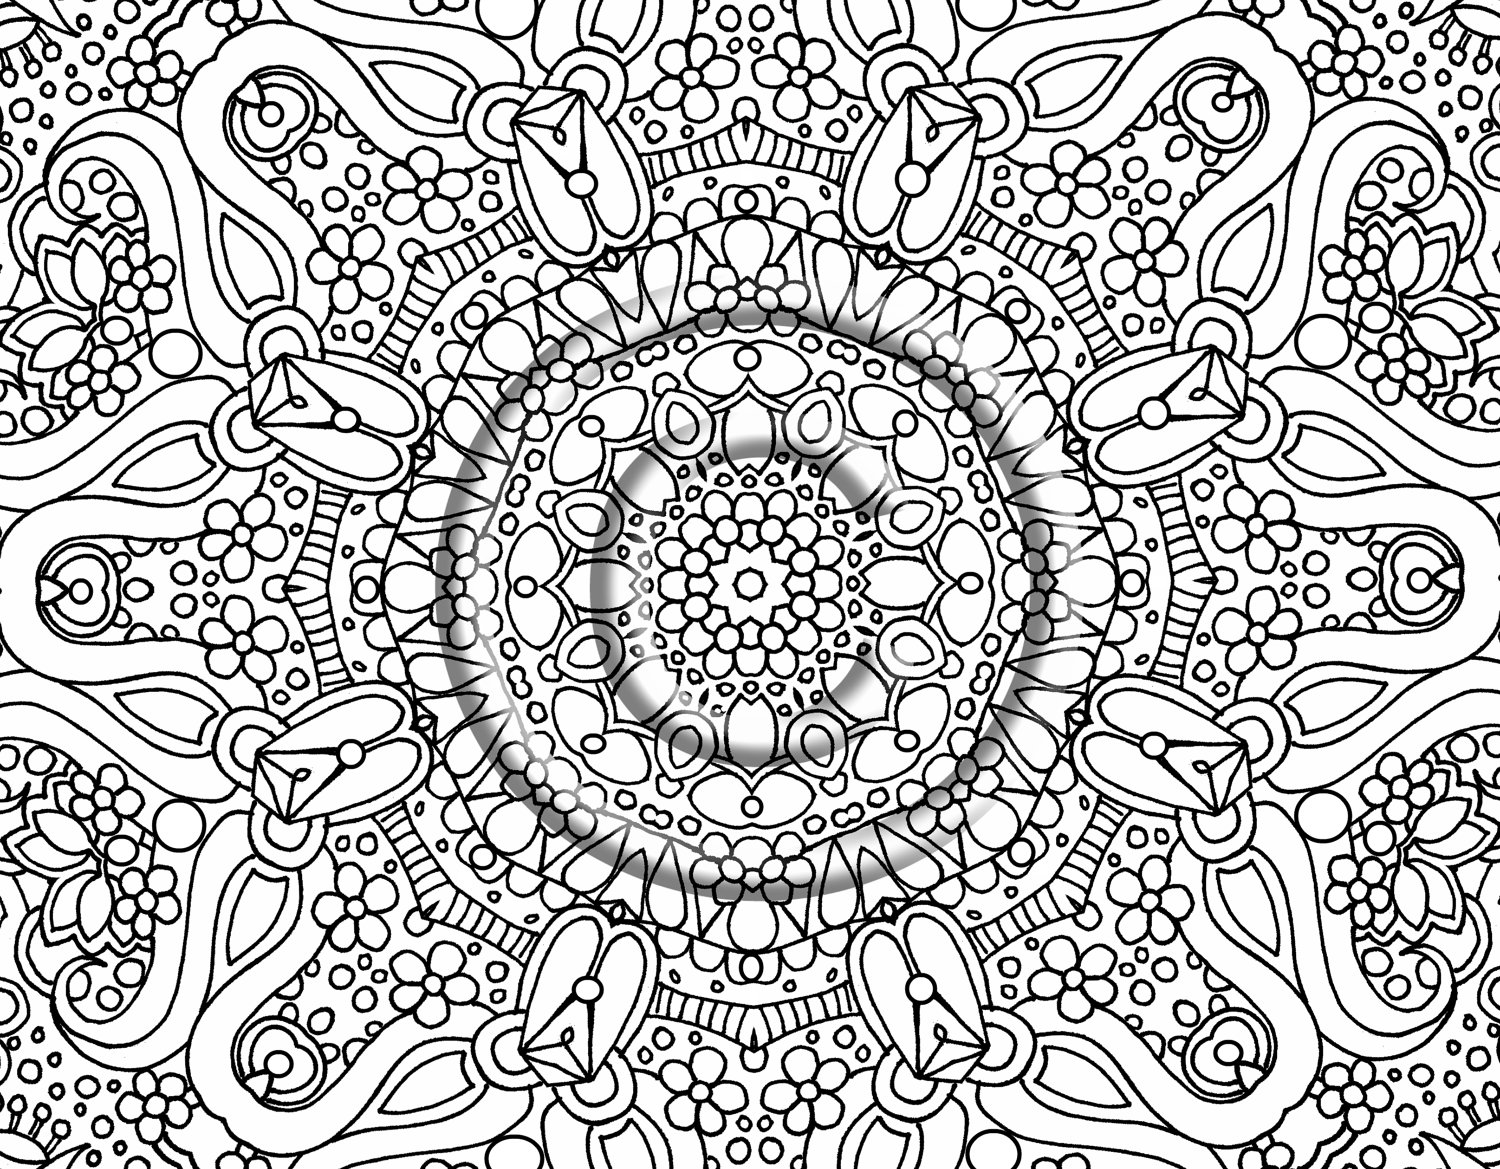 patterns for colouring for adults get this flower pattern coloring pages to print for adults colouring patterns for for adults